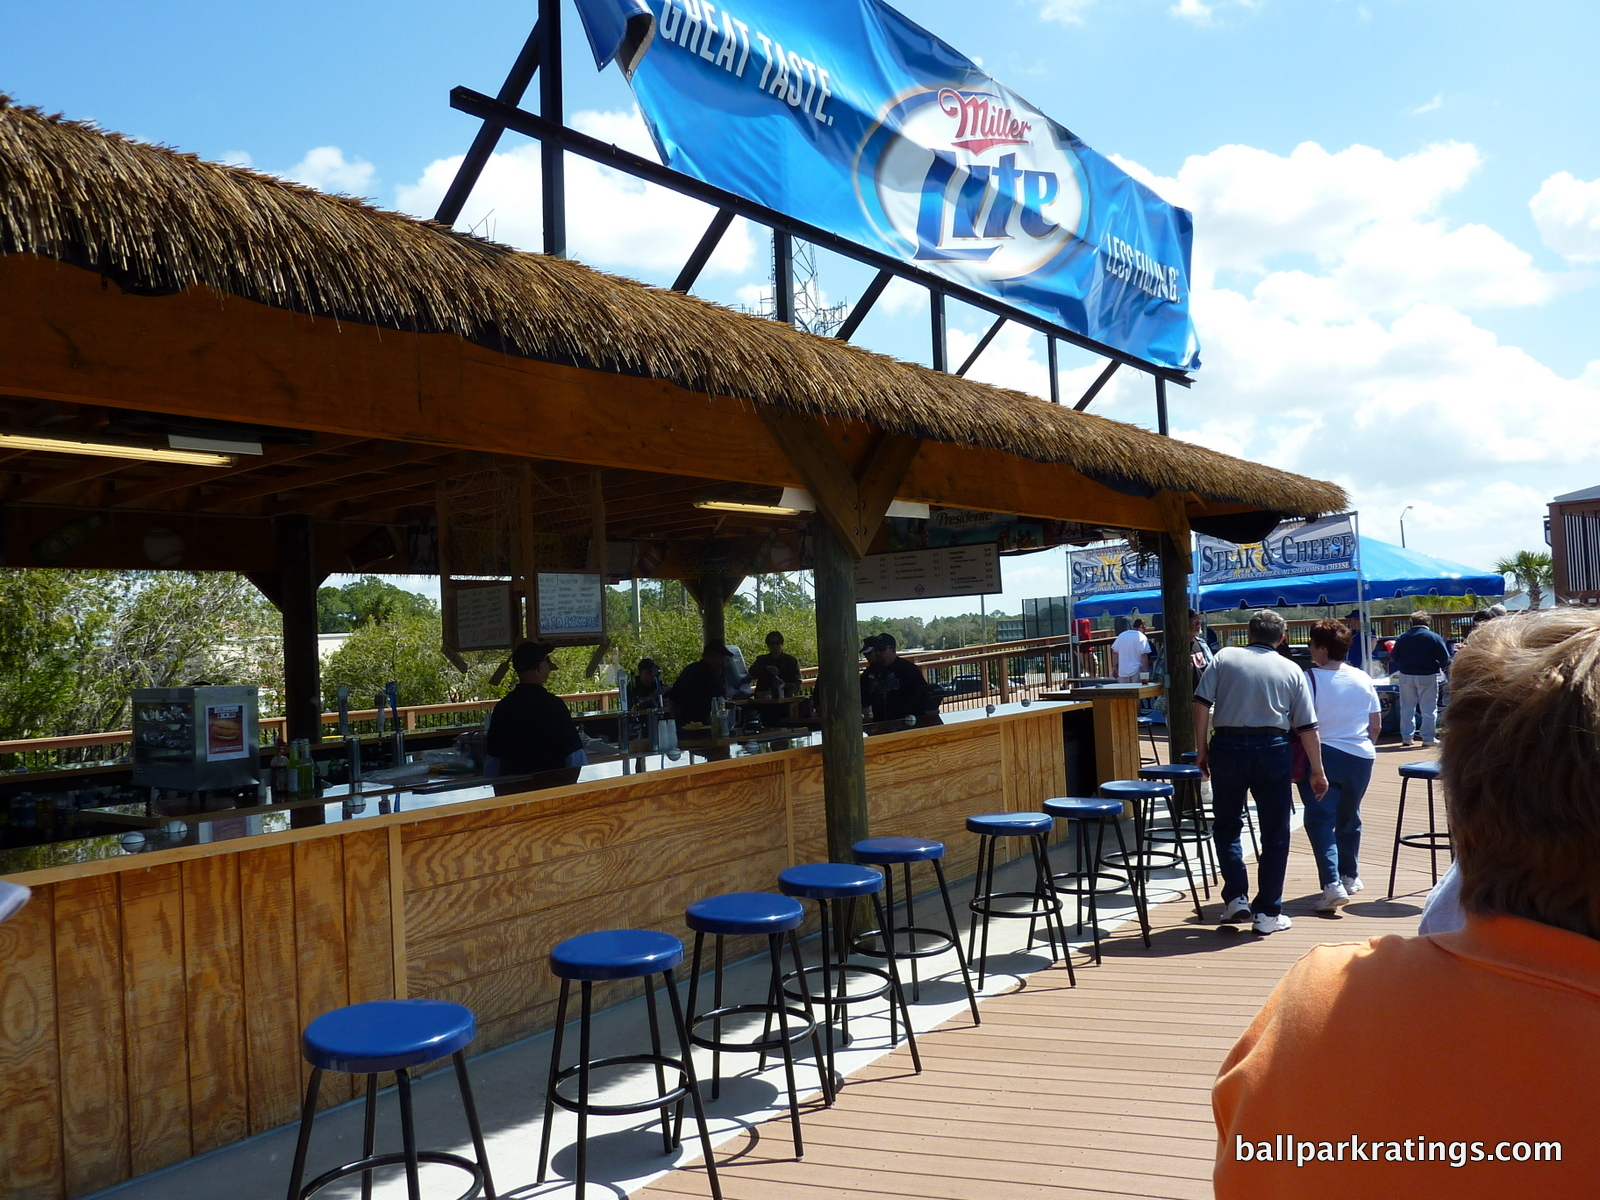 Tiki Bar at Charlotte Sports Park.